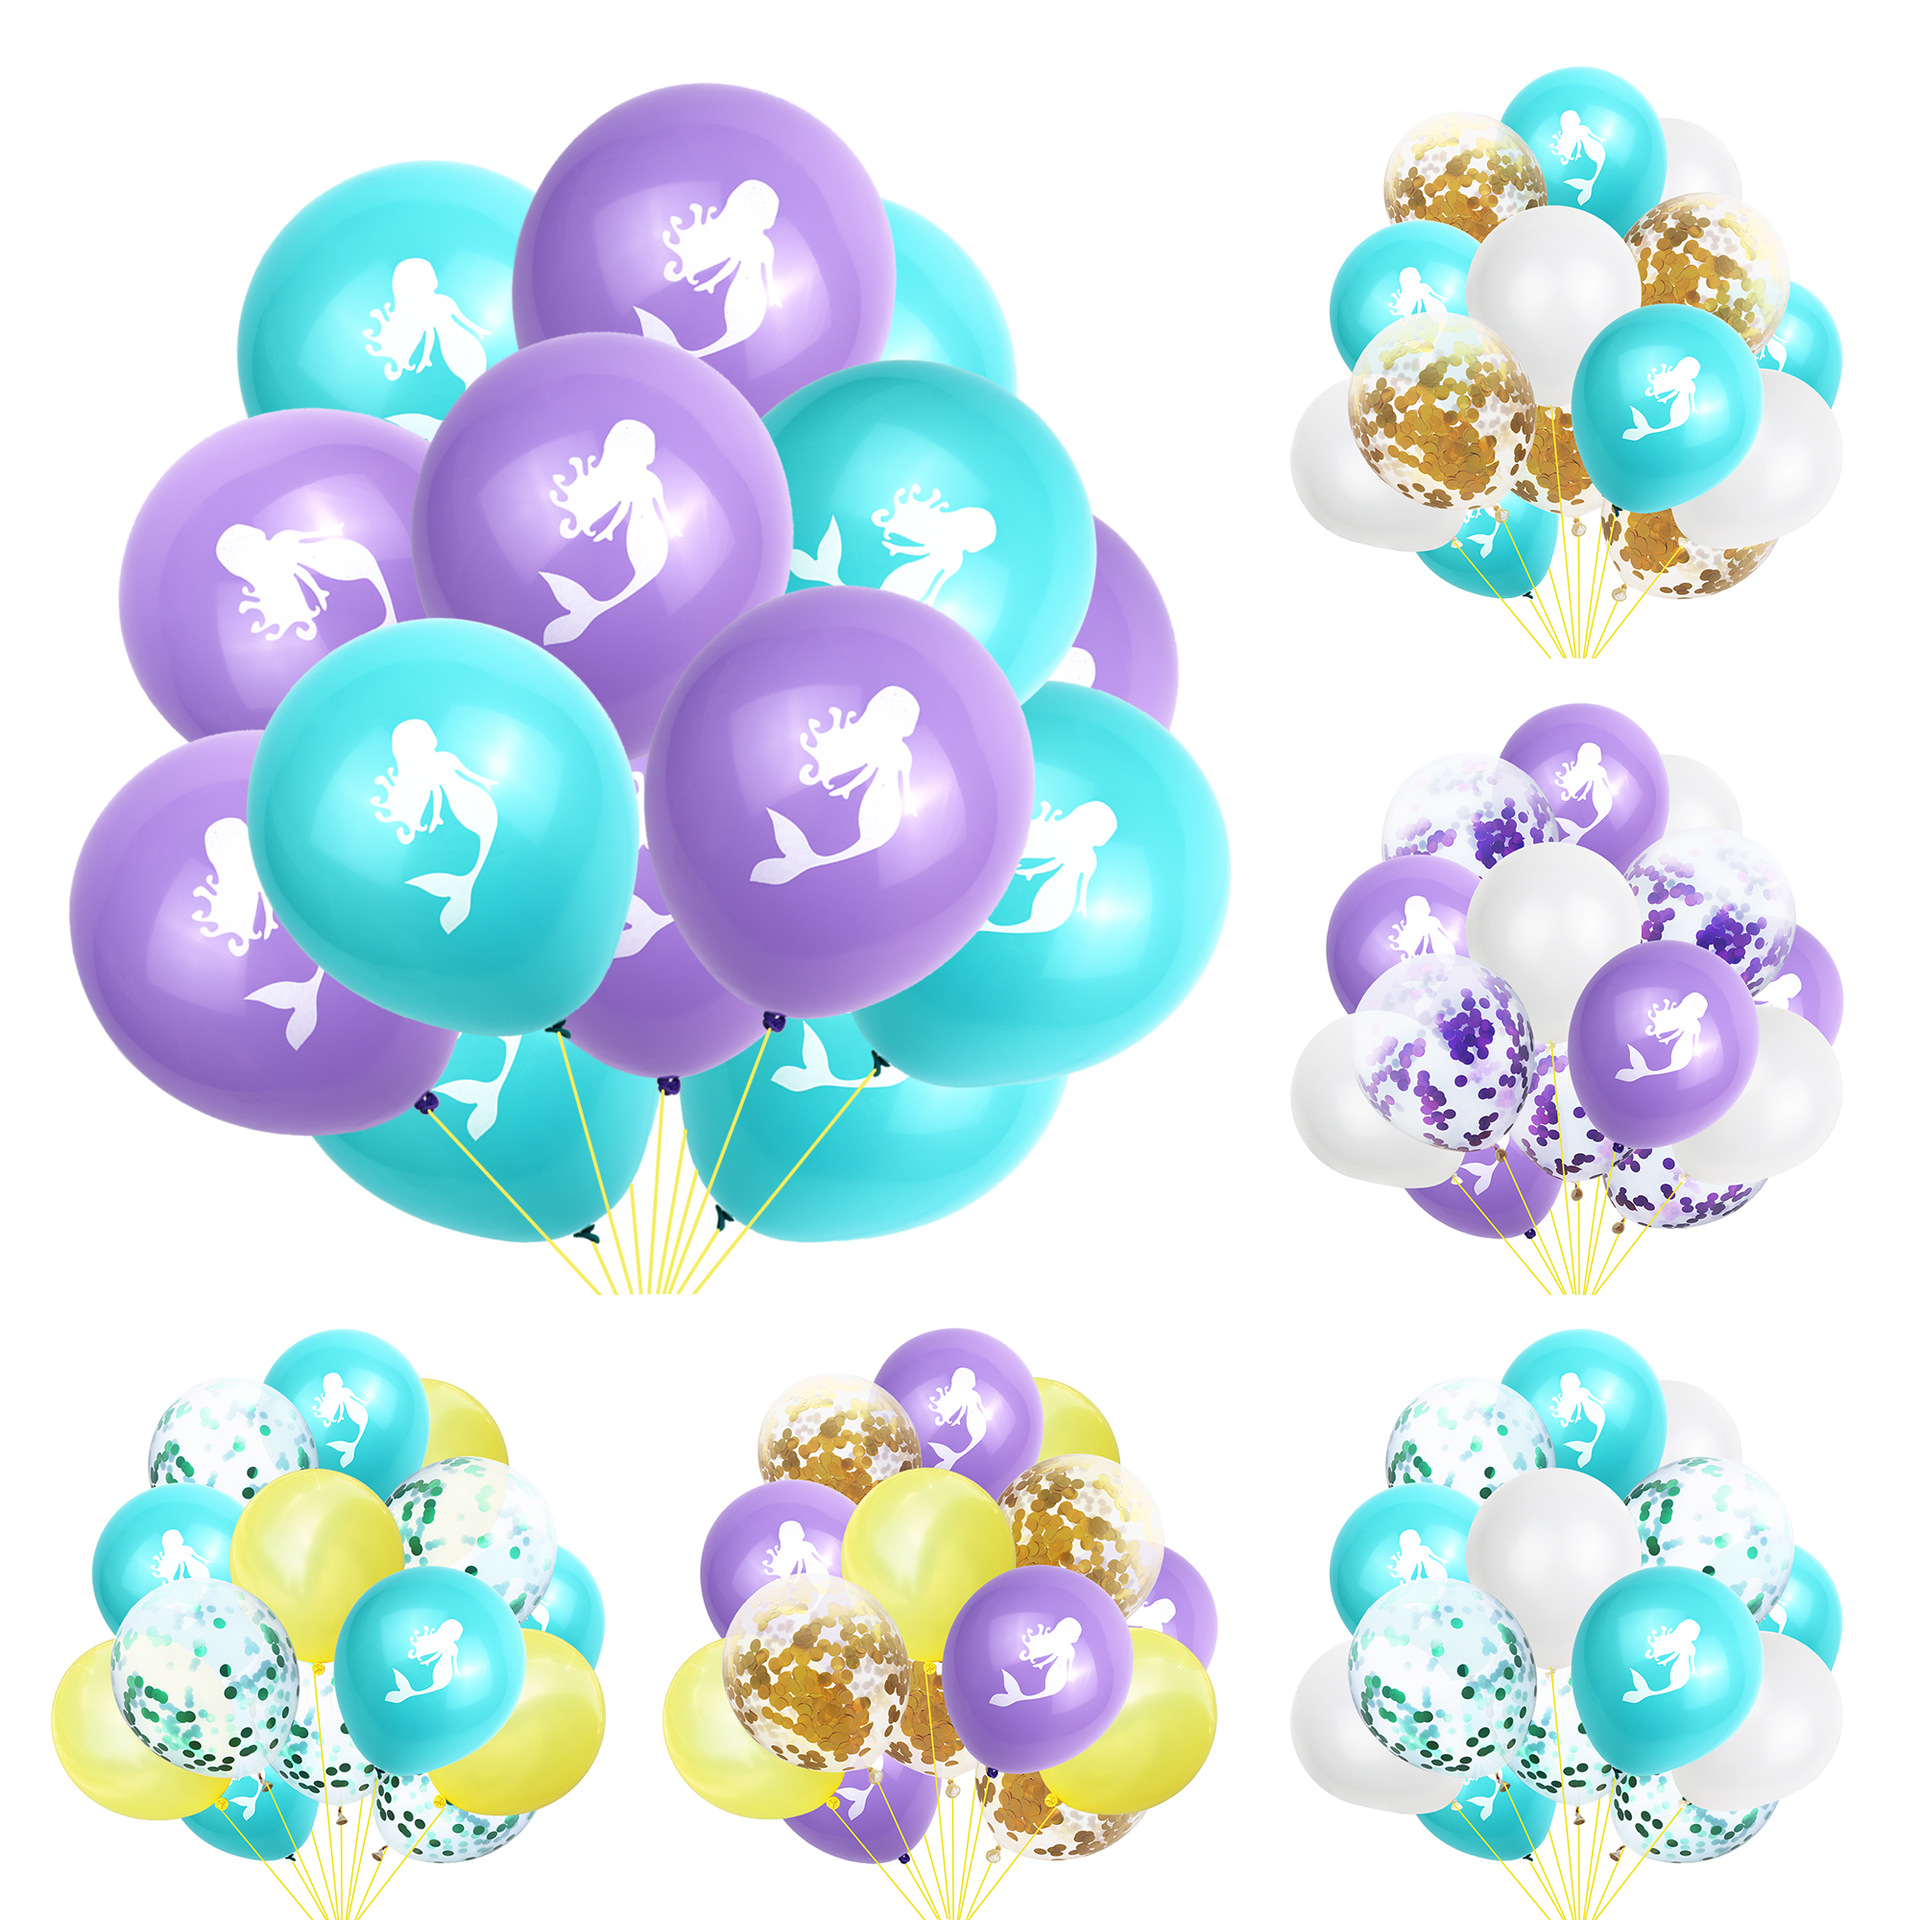 15pcs Little Mermaid Balloons Multicolor Confetti Balloon Wedding Ballons Birthday Party Decoration Baby Shower Supplies